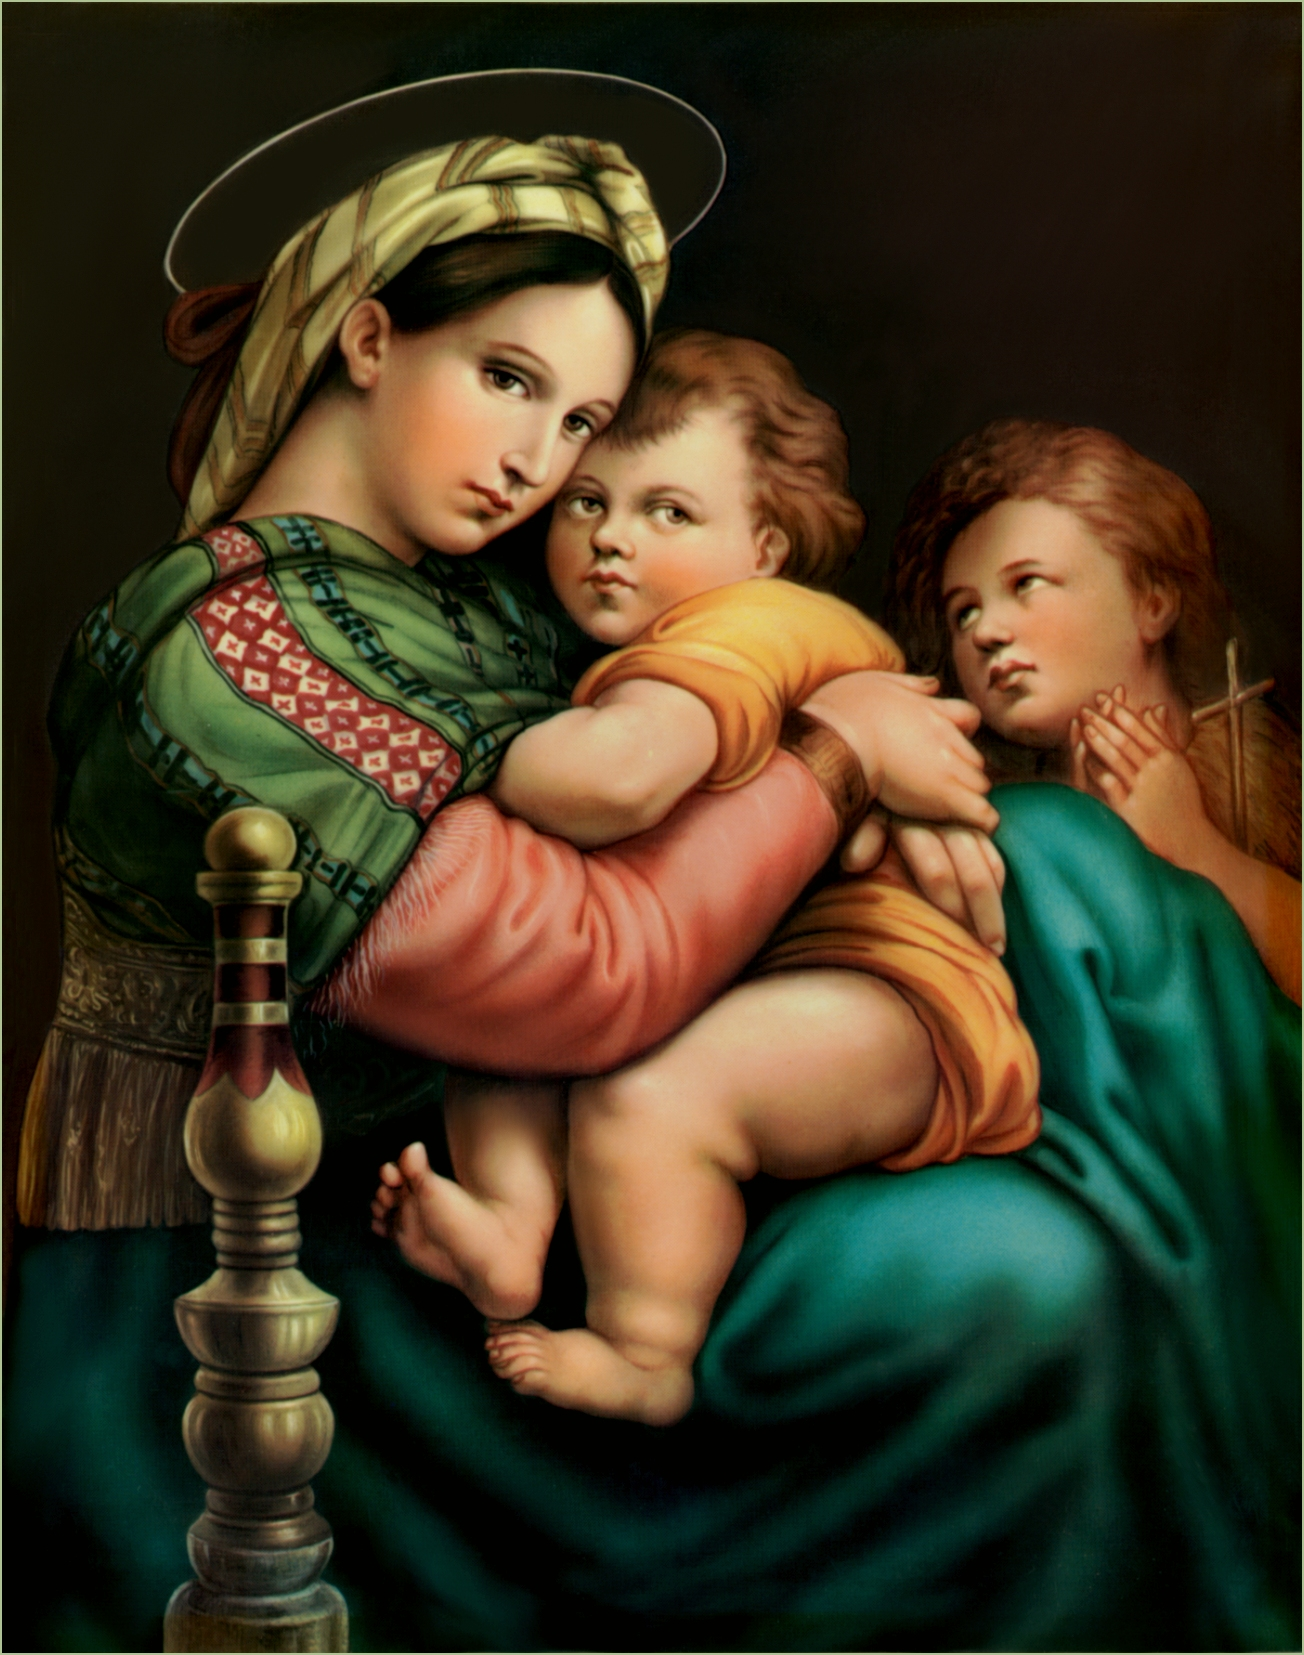 visual analysis of madonna of the meadow by raphael 536 results raphael sanzio, usually known by his first name alone (in italian raffaello) (april 6 or march 28, 1483 - april 6, 1520) was an italian painter and architect of the high raphael reproductions - madonna & child (madonna del granduca) 1505 reproduction oil paintings - raphael - madonna of the meadow.